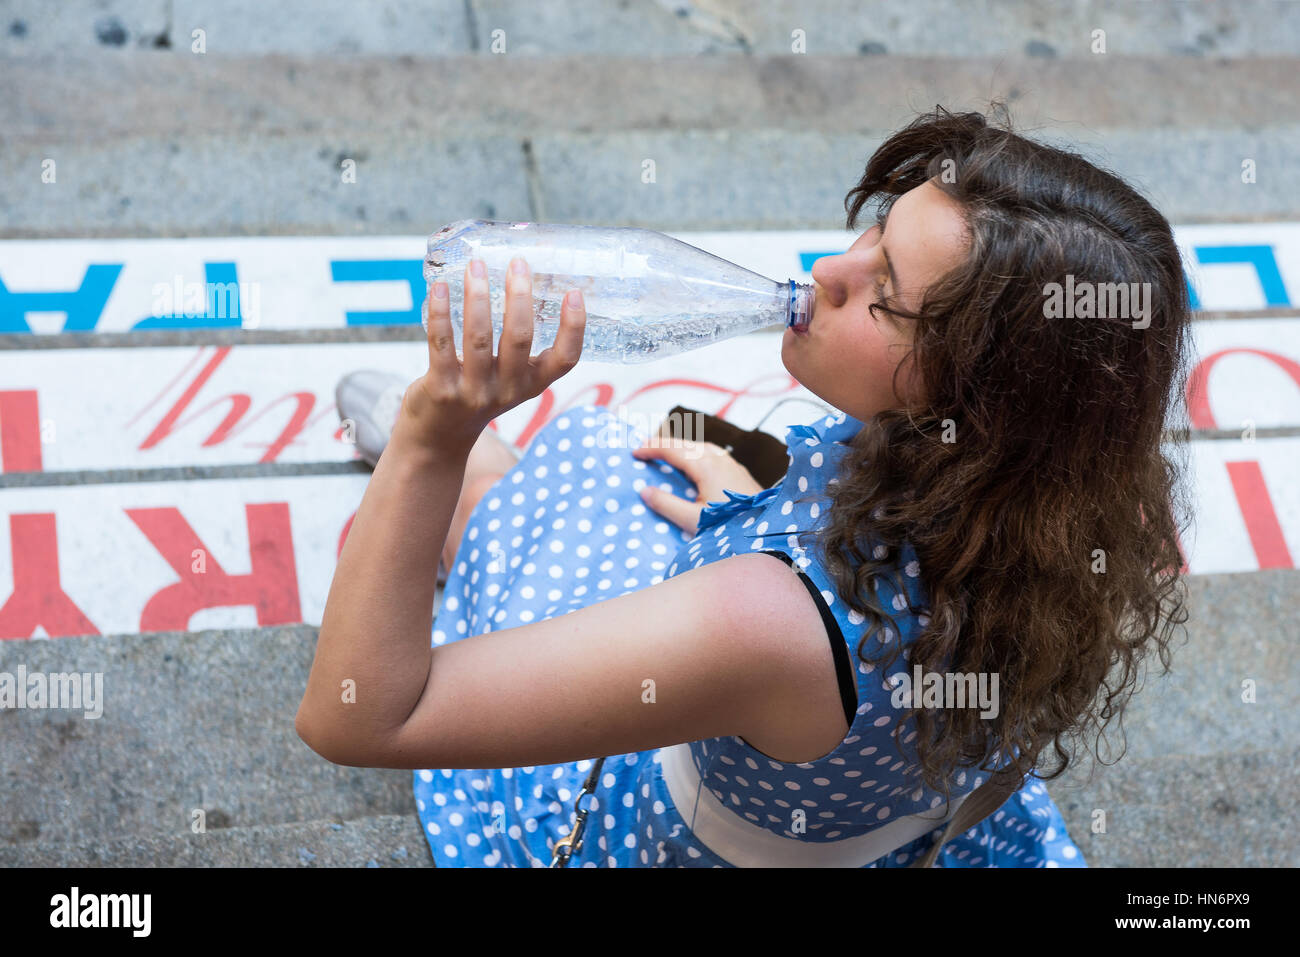 Young woman with blue polka dot dress sitting on steps drinking carbonated water in a clear bottle - Stock Image